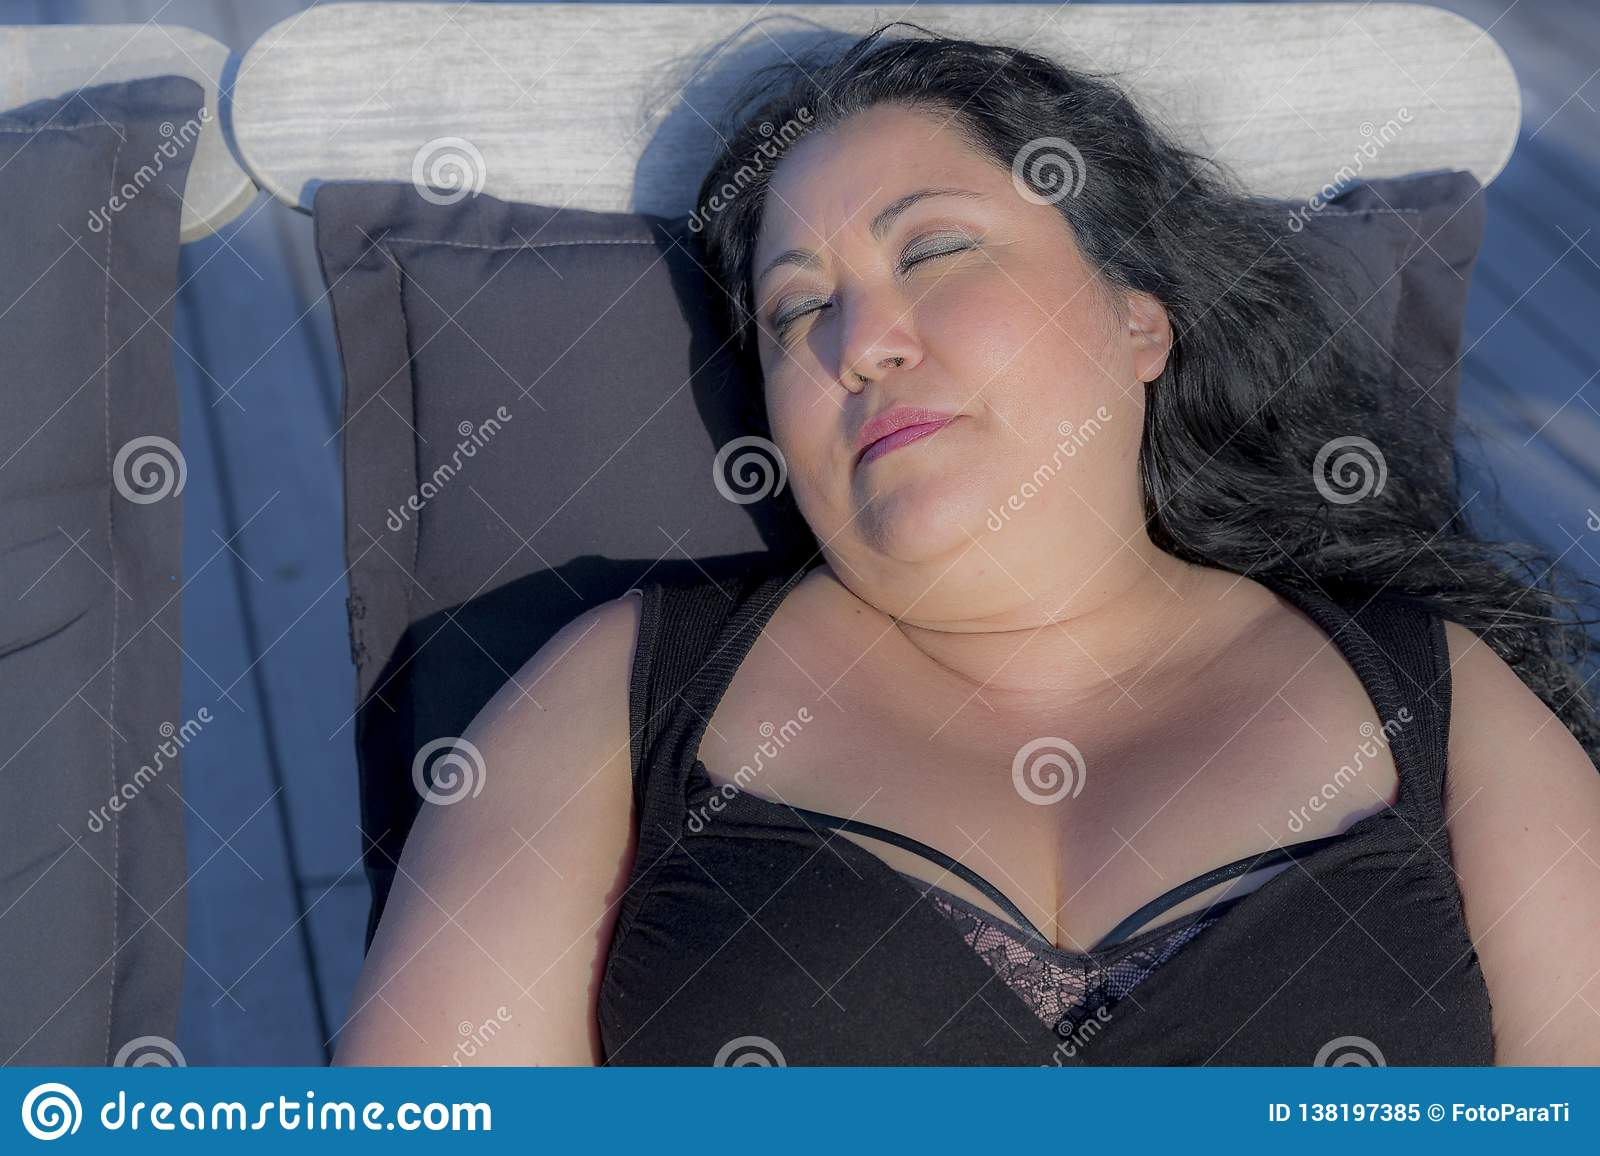 Image of a beautiful relaxed woman sleeping on a sunbathing chair